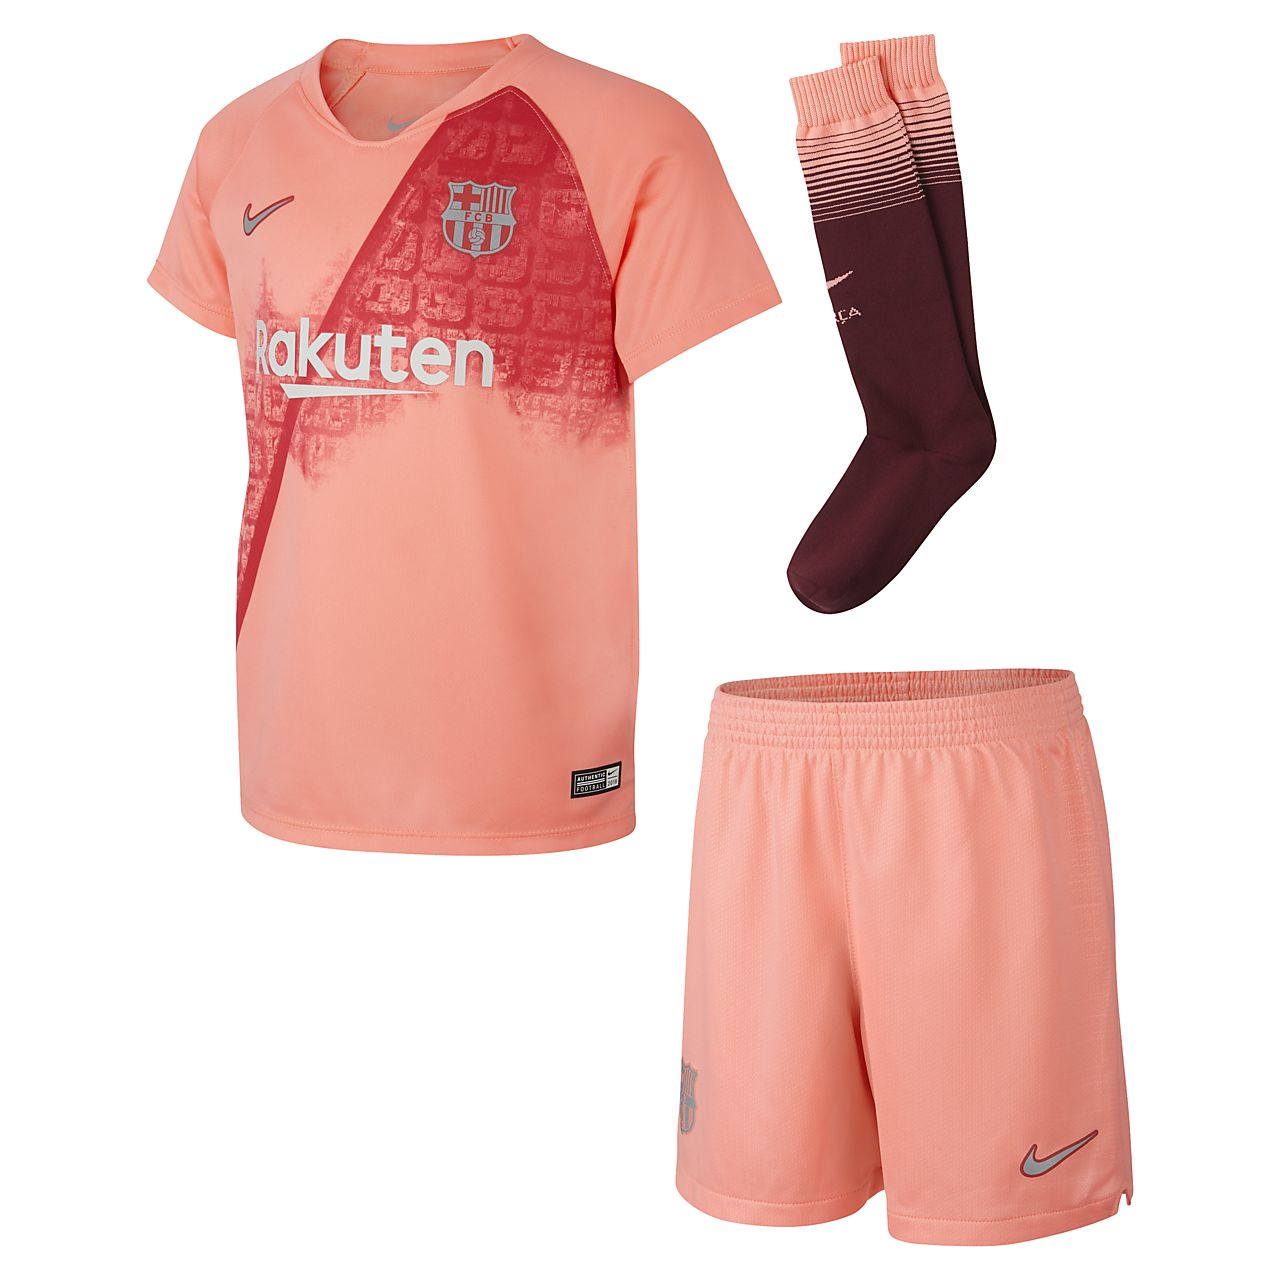 17693a065 2018 19 FC Barcelona Stadium Third Younger Kids  Football Kit. Nike ...